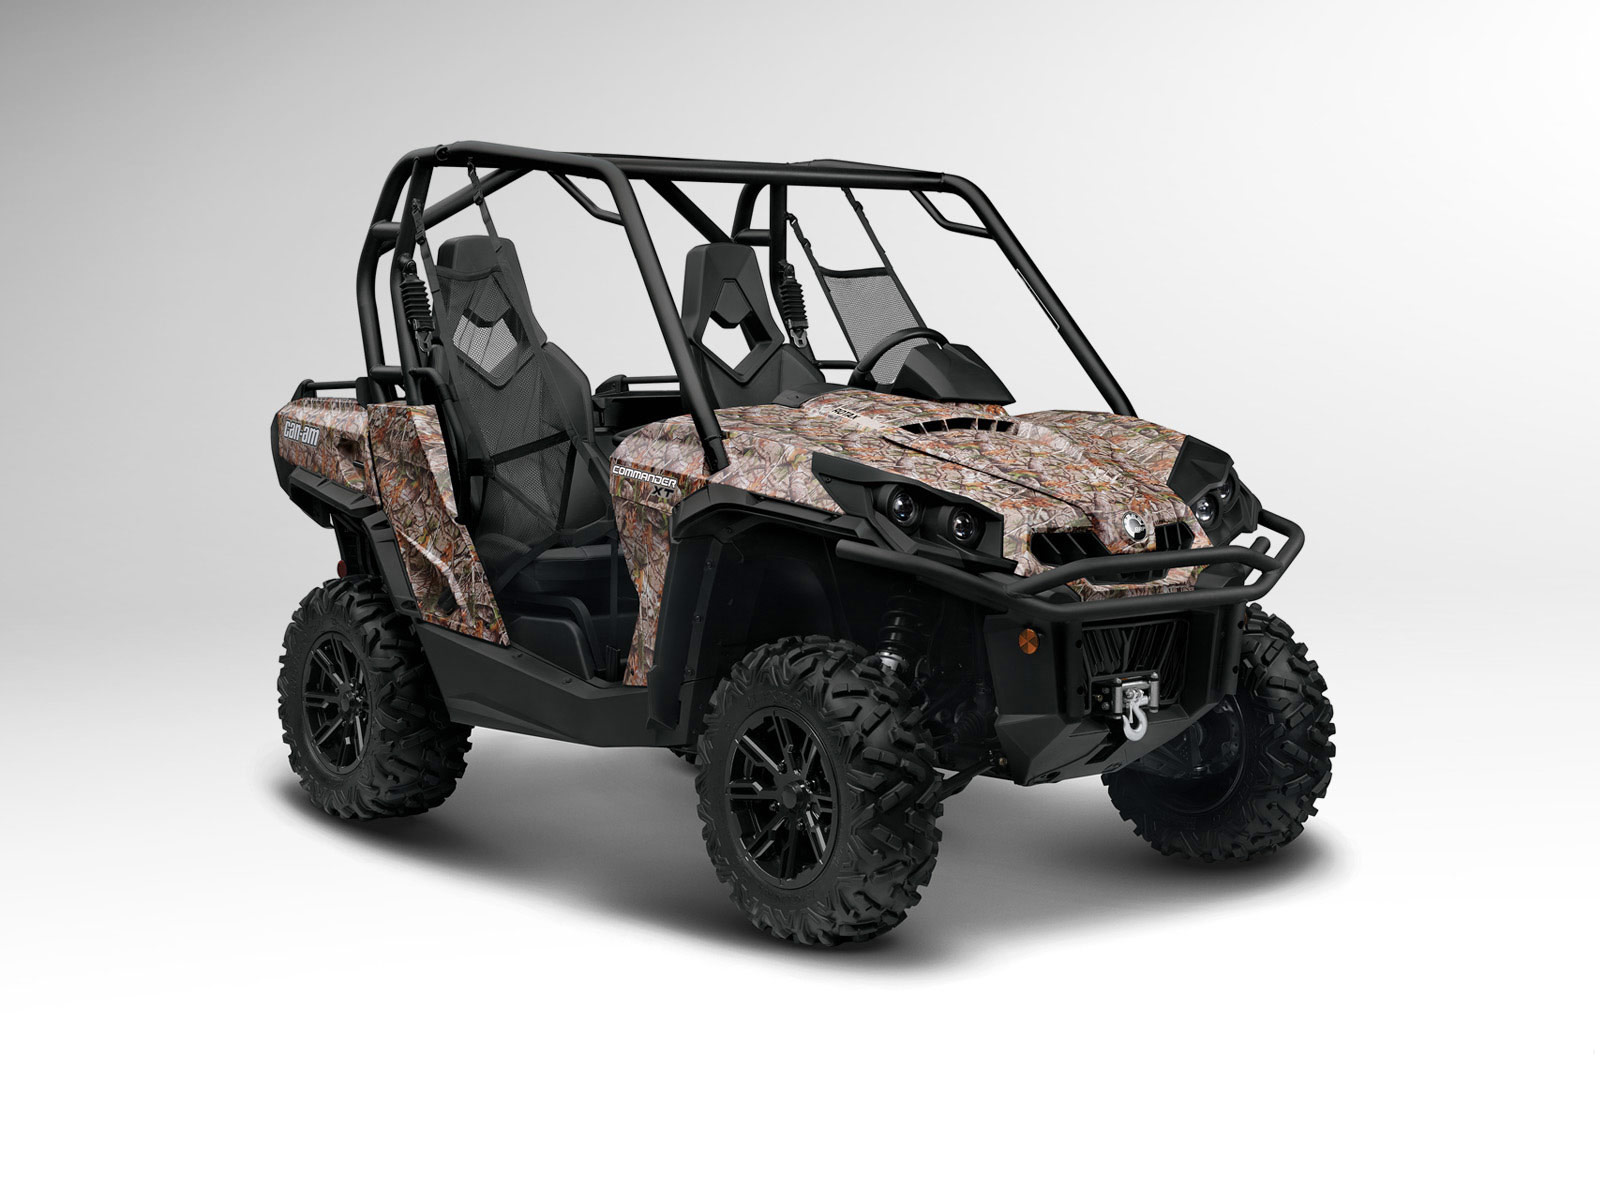 2012 Can-Am Commander 1000 XT ATV pictures 4